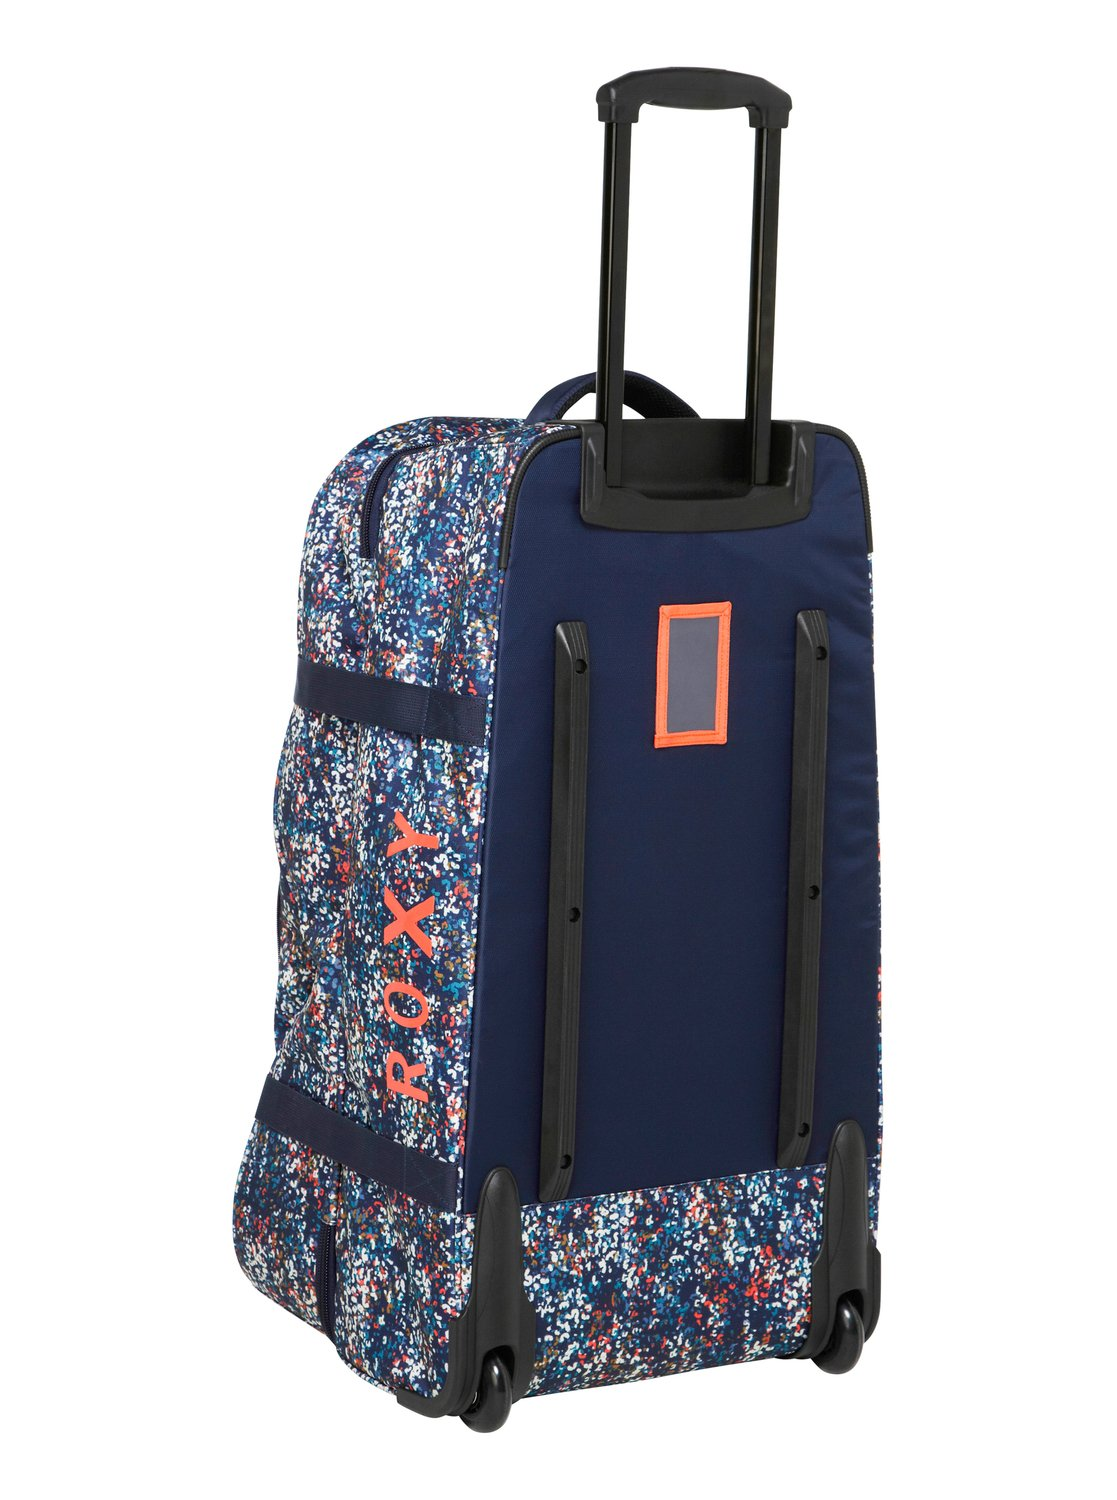 Roxy Travel Bag Wheels